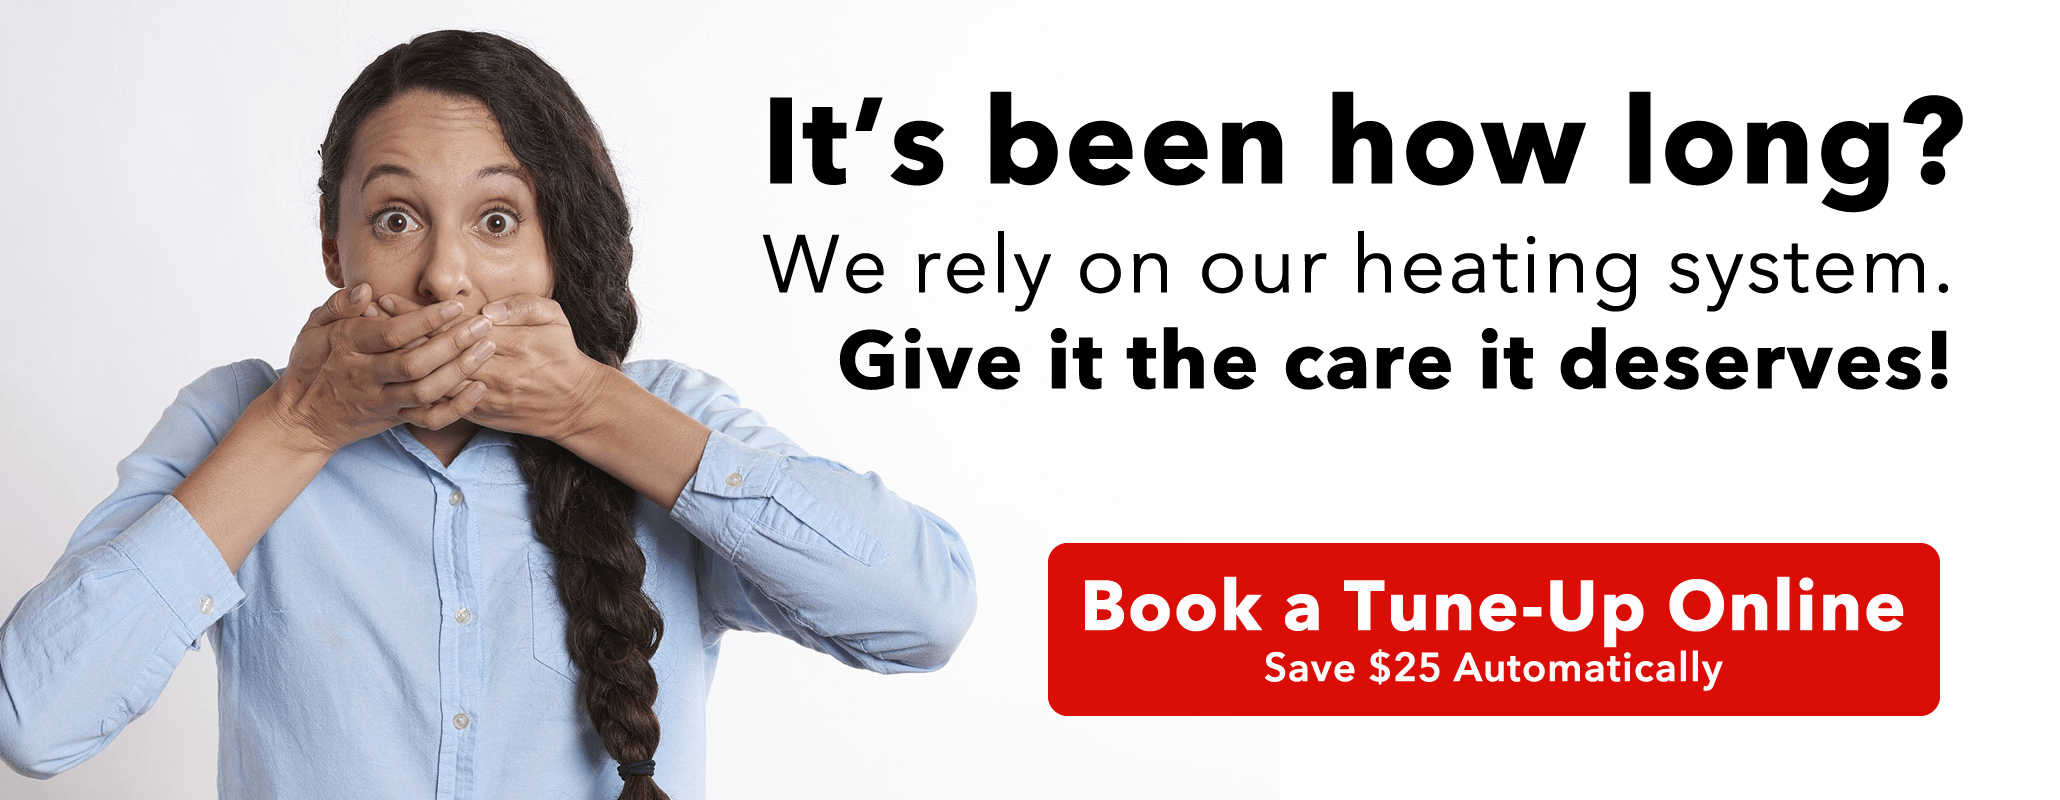 Schedule your Furnace or Boiler Tune-Up, and give it the attention it deserves.